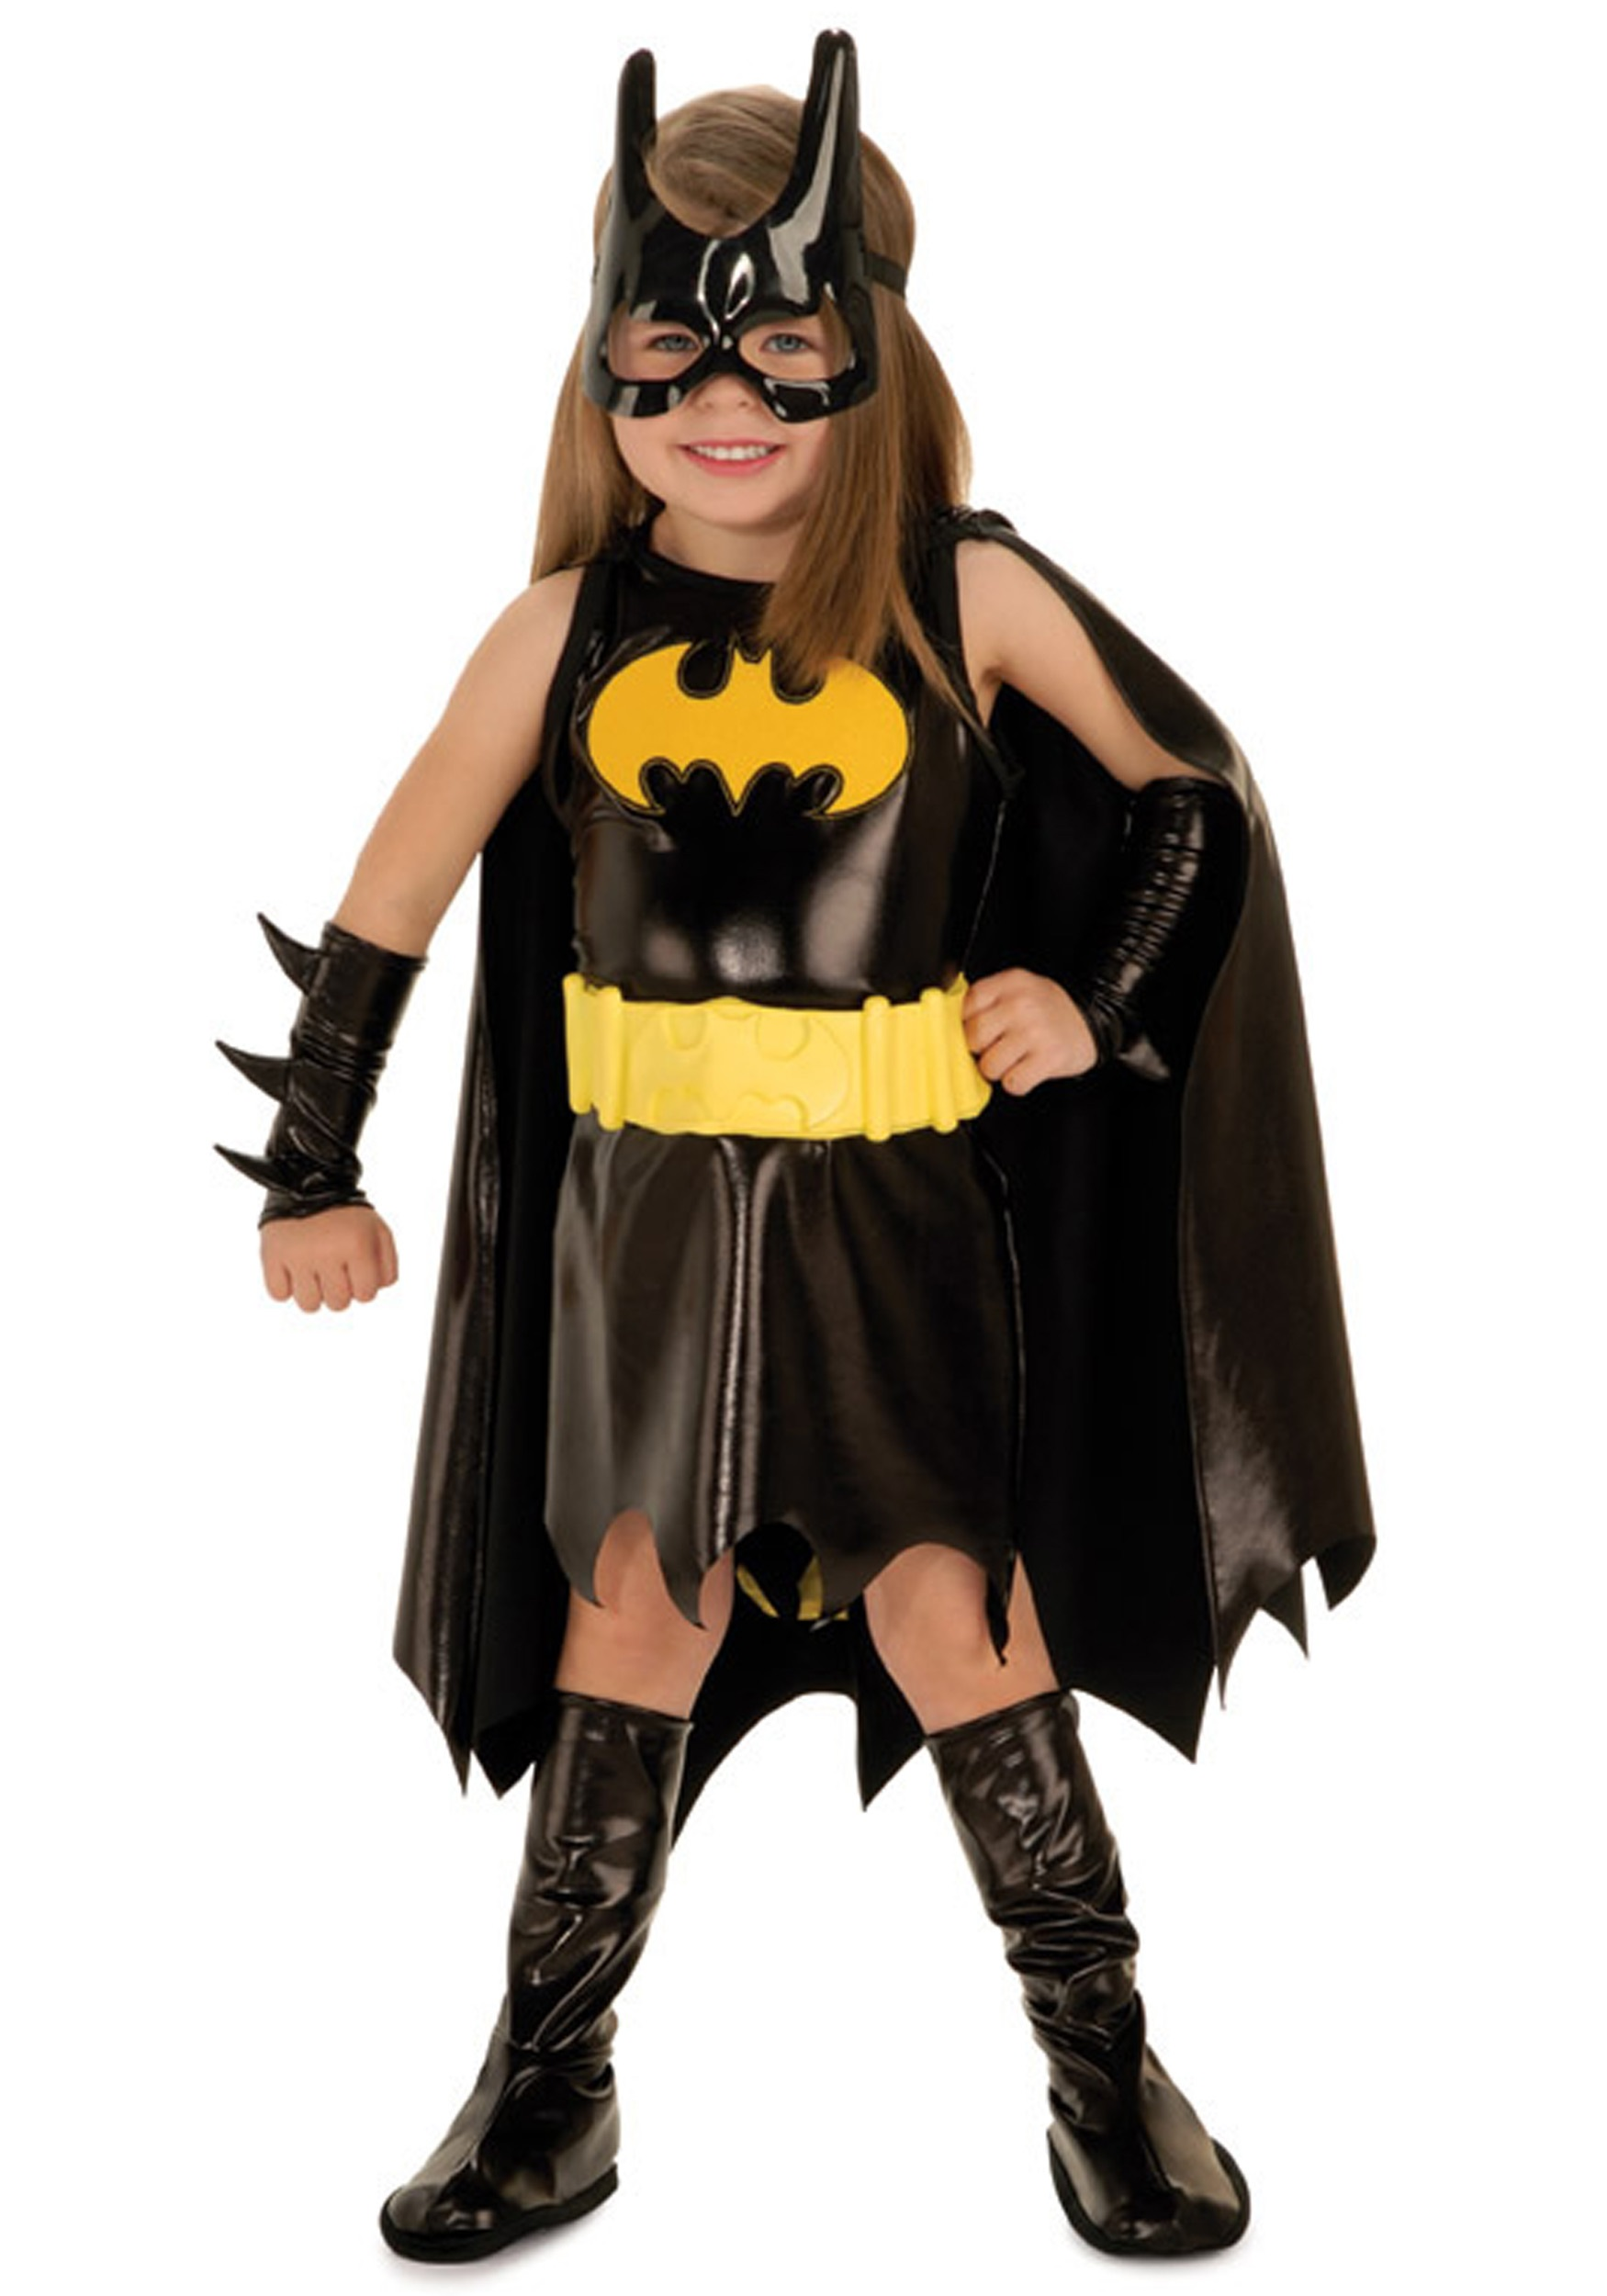 Batgirl Toddler Costume  sc 1 st  Halloween Costumes & Batgirl Toddler Costume - Halloween Costumes